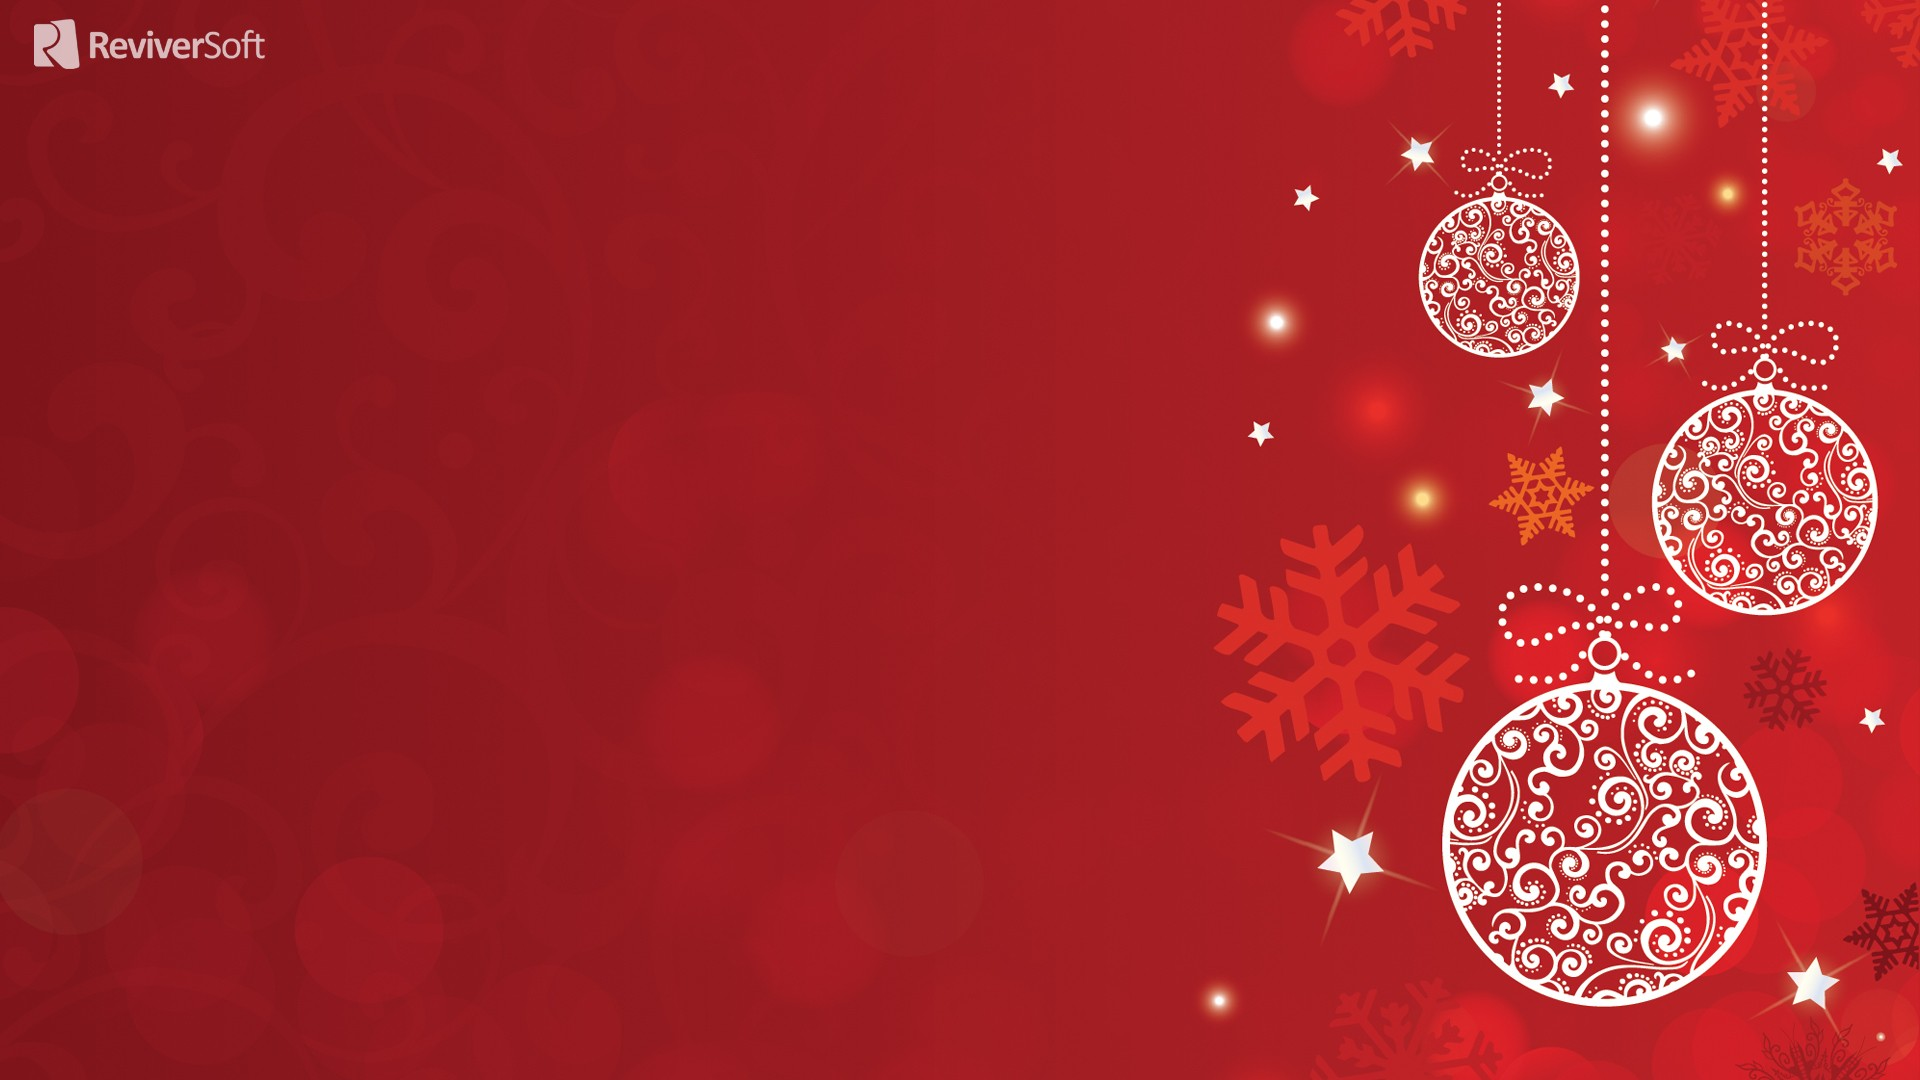 Wallpaper Hd 1080p Free Download Christmas Background 183 ① Download Free Amazing Backgrounds